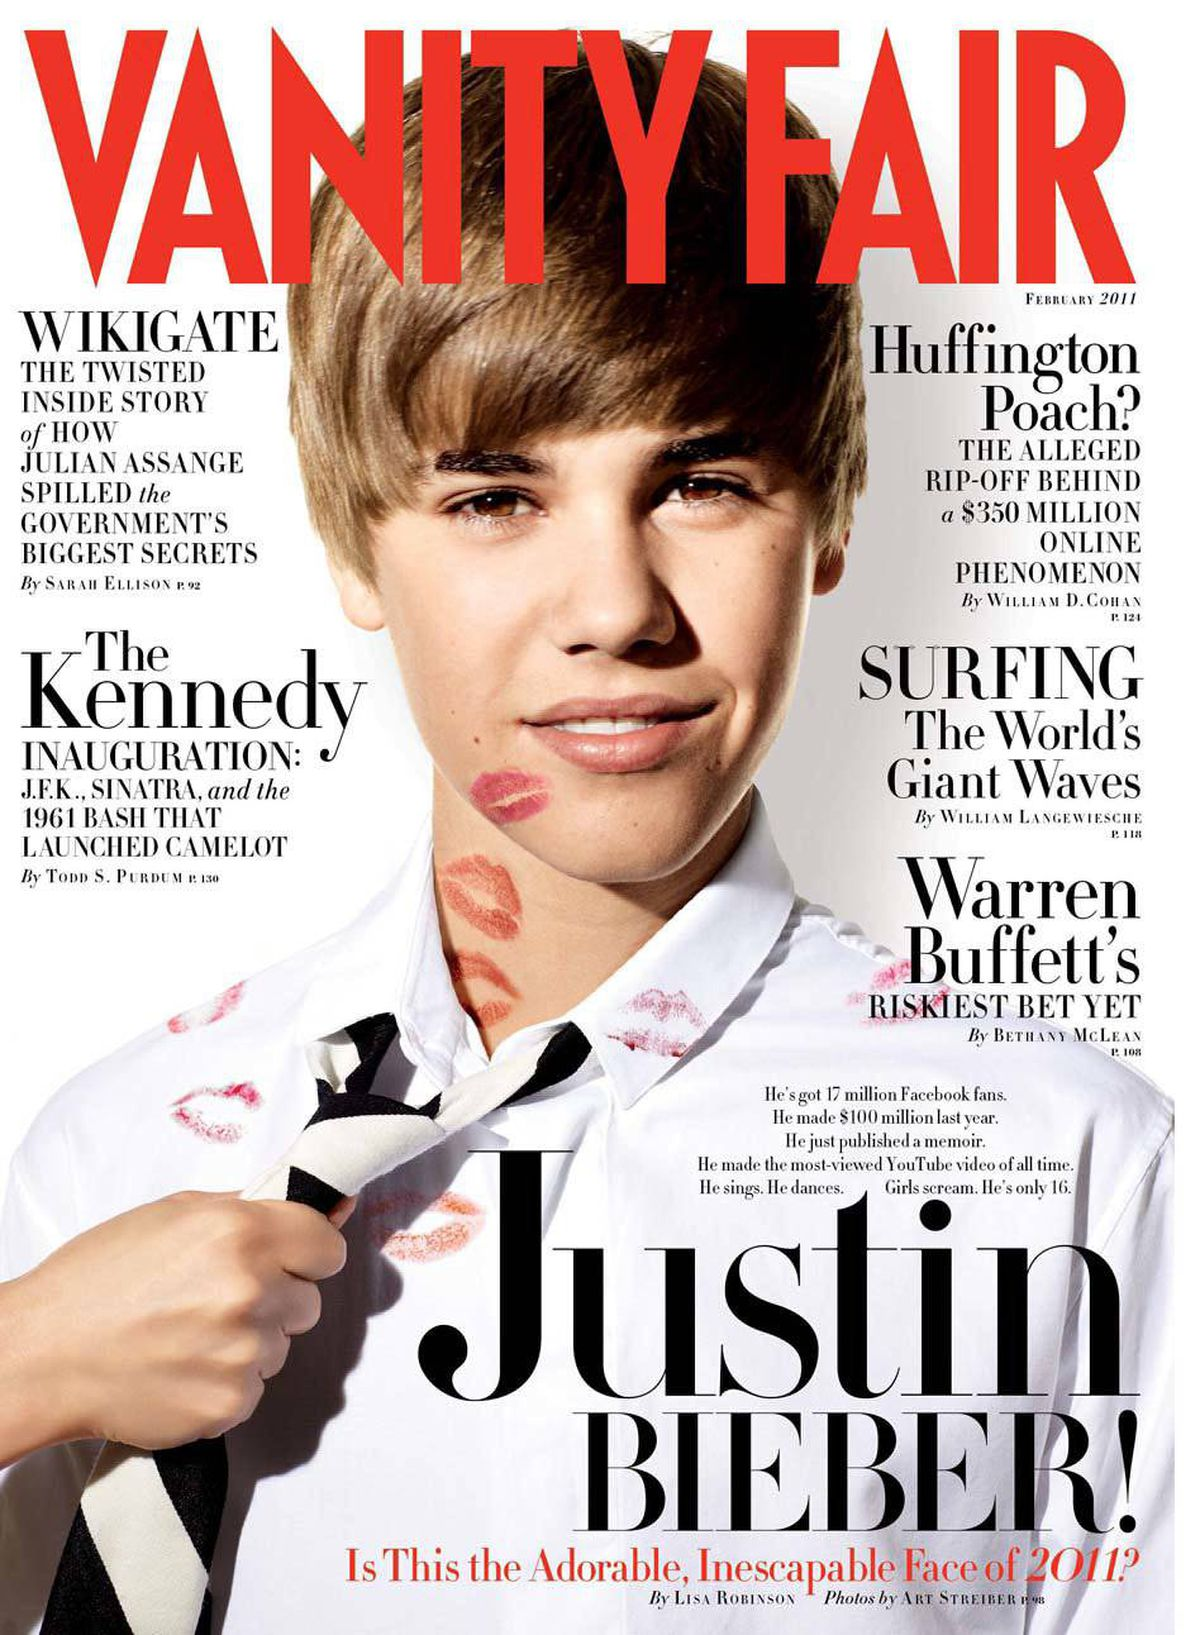 """Justin Bieber began 2011 by appearing on the cover of the February issue of Vanity Fair, which came out on Jan. 11. In the article he revealed that he was crazy AND nuts. """"I'm crazy, I'm nuts,"""" was how he put it."""